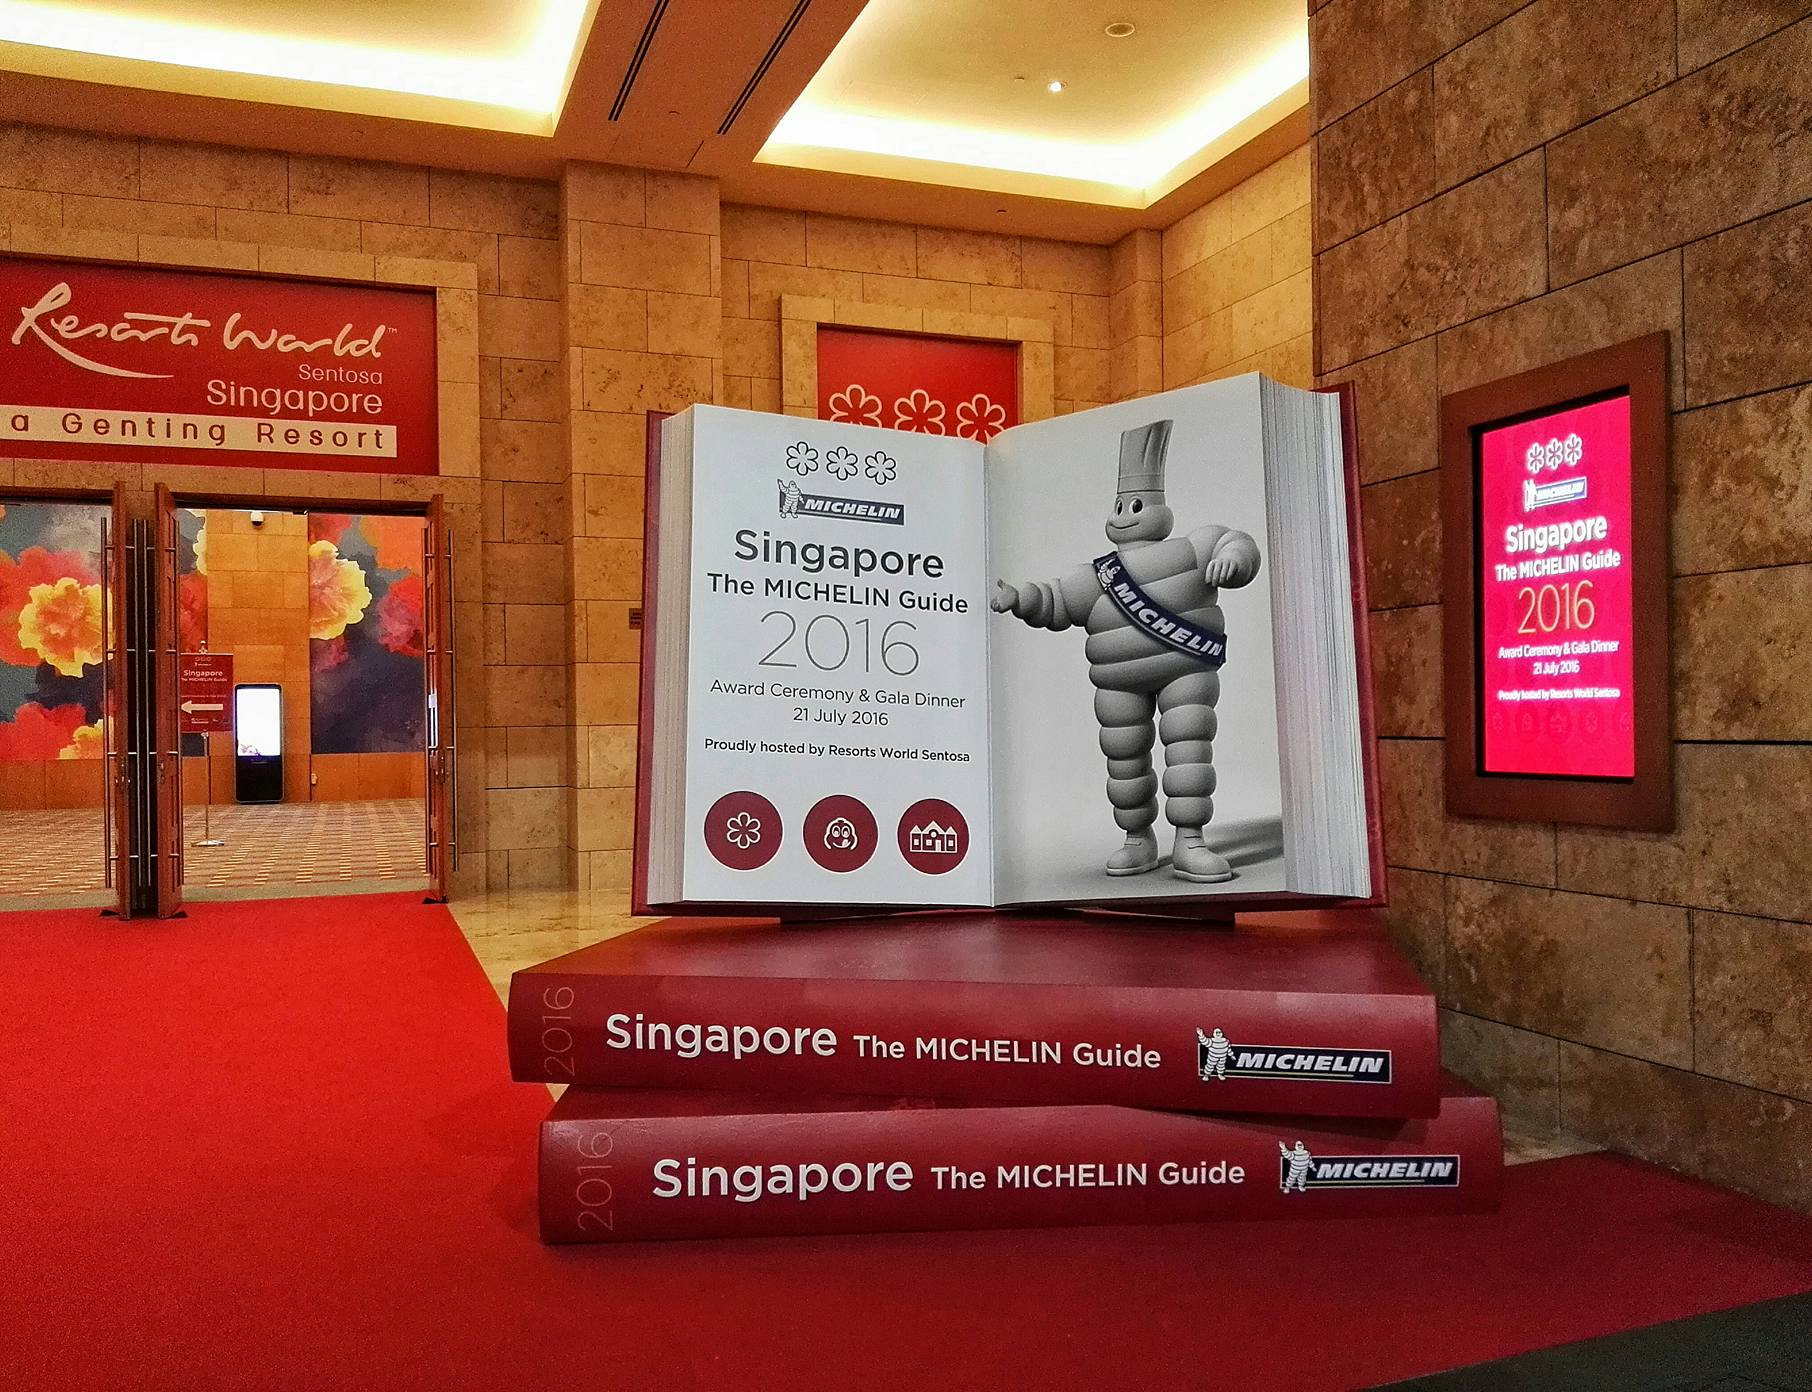 The first Michelin Singapore awards ceremony was held at Resorts World Sentosa